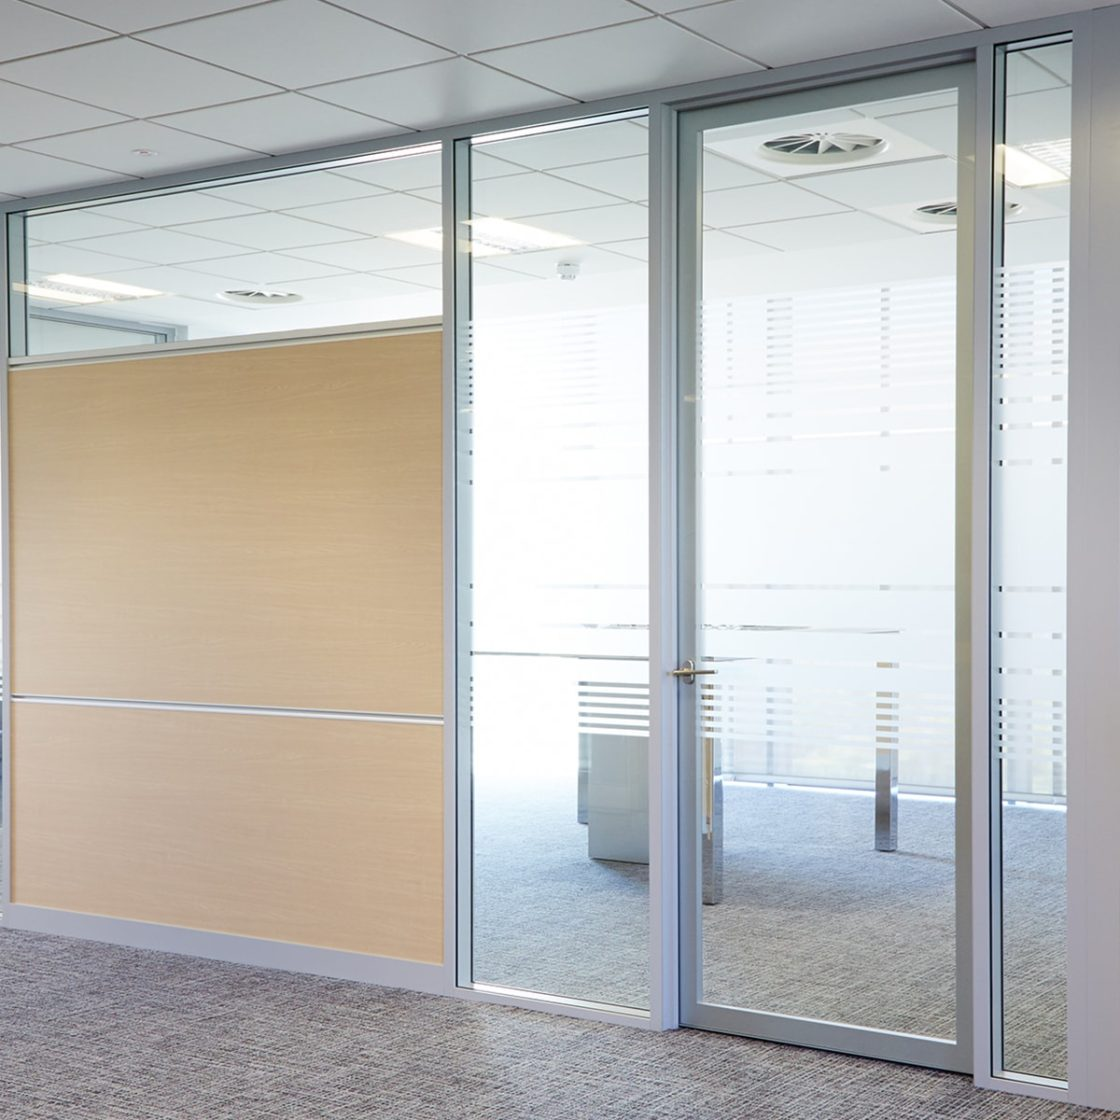 Workwall   Double glazing   dry-wipe surfaces  